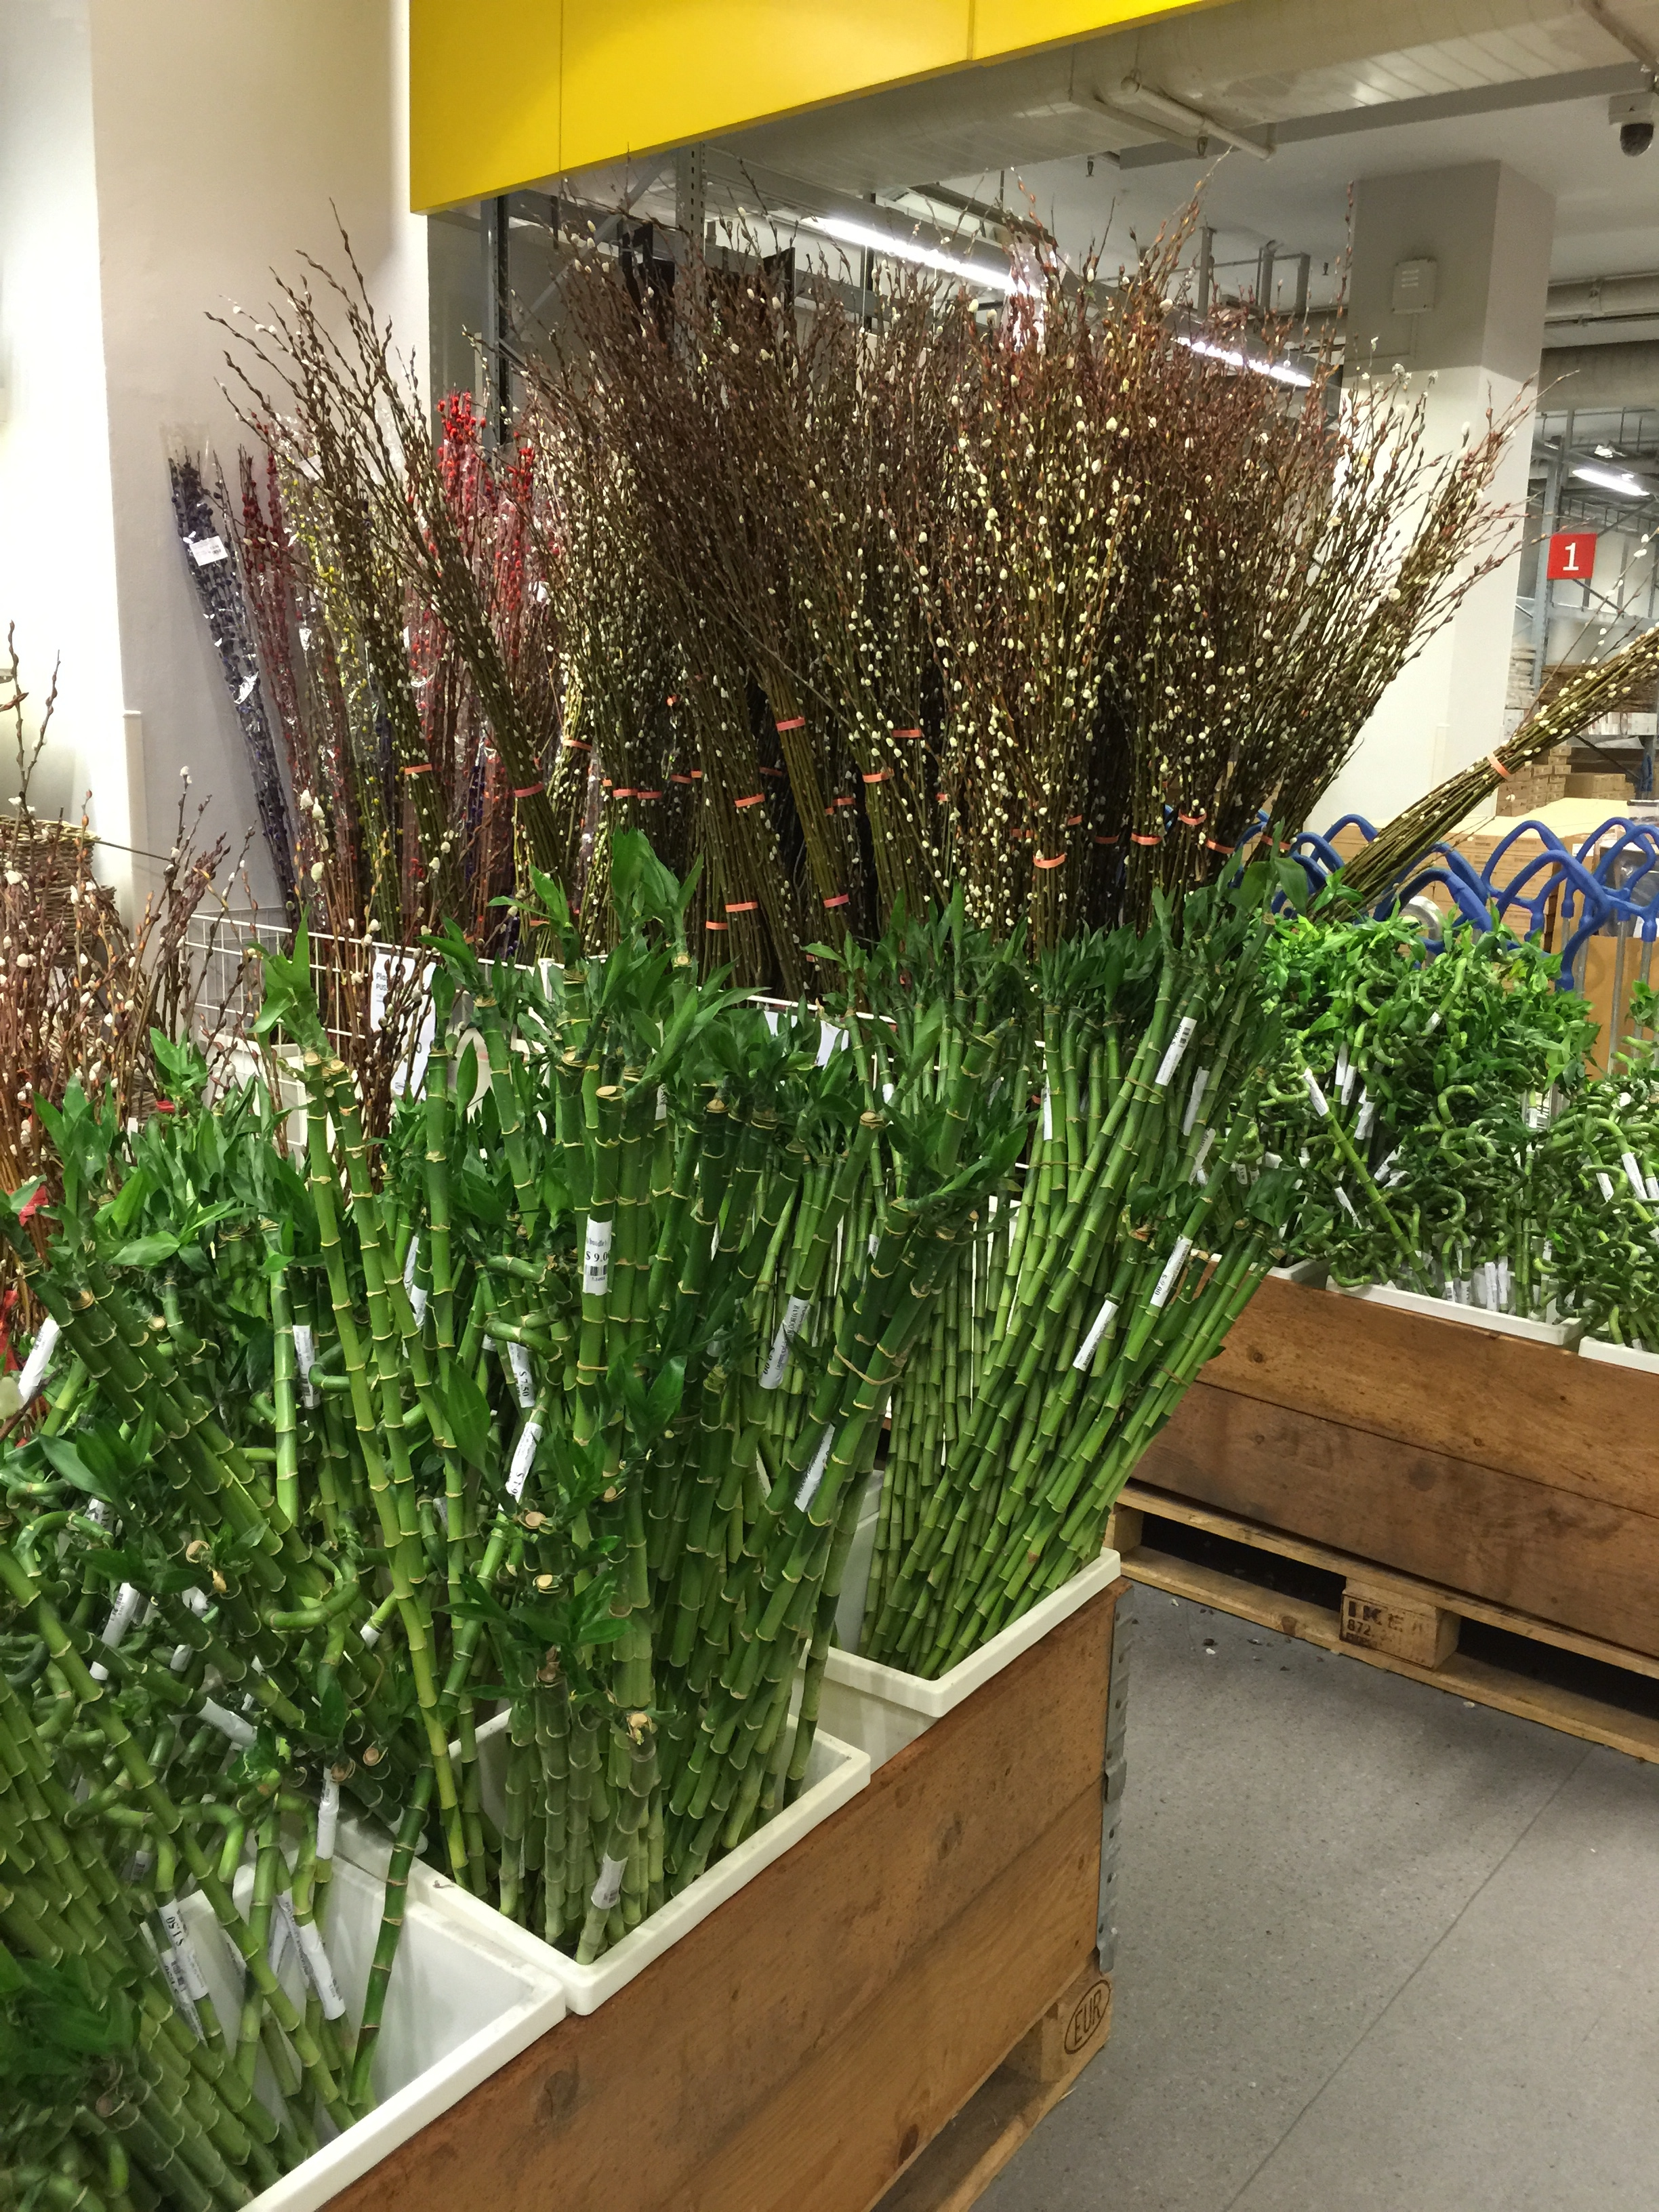 cny2015 lucky bamboo at ikea singapore actually. Black Bedroom Furniture Sets. Home Design Ideas